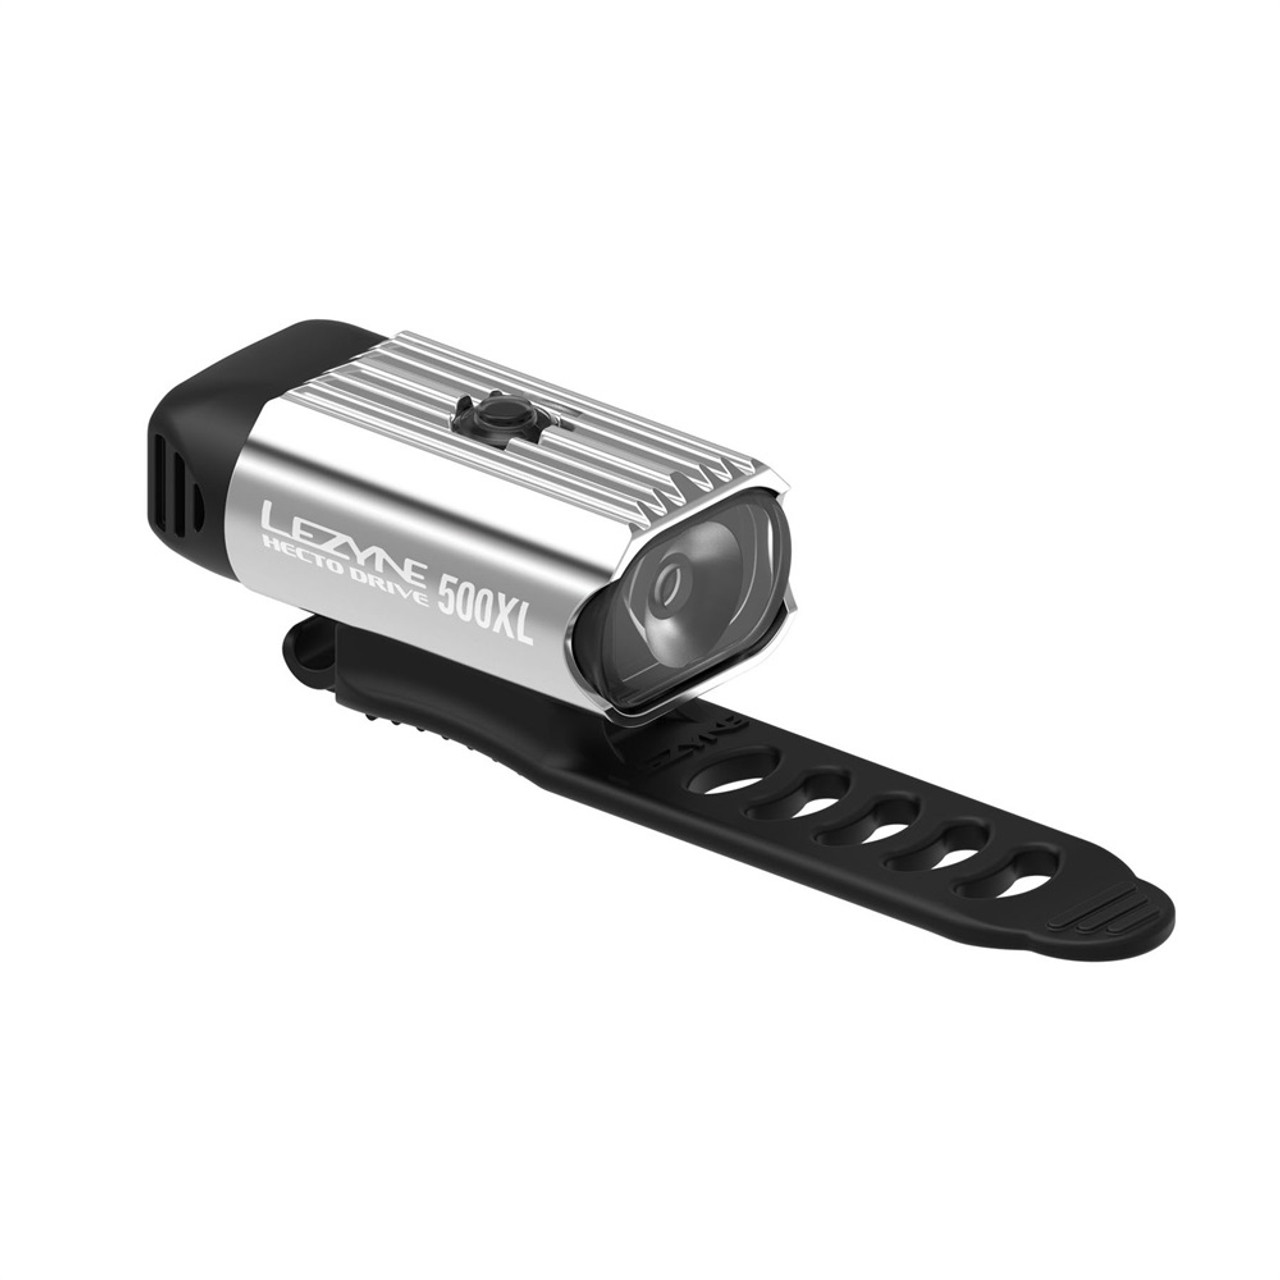 Lezyne Hecto Drive 500XL Front Light Polished Silver